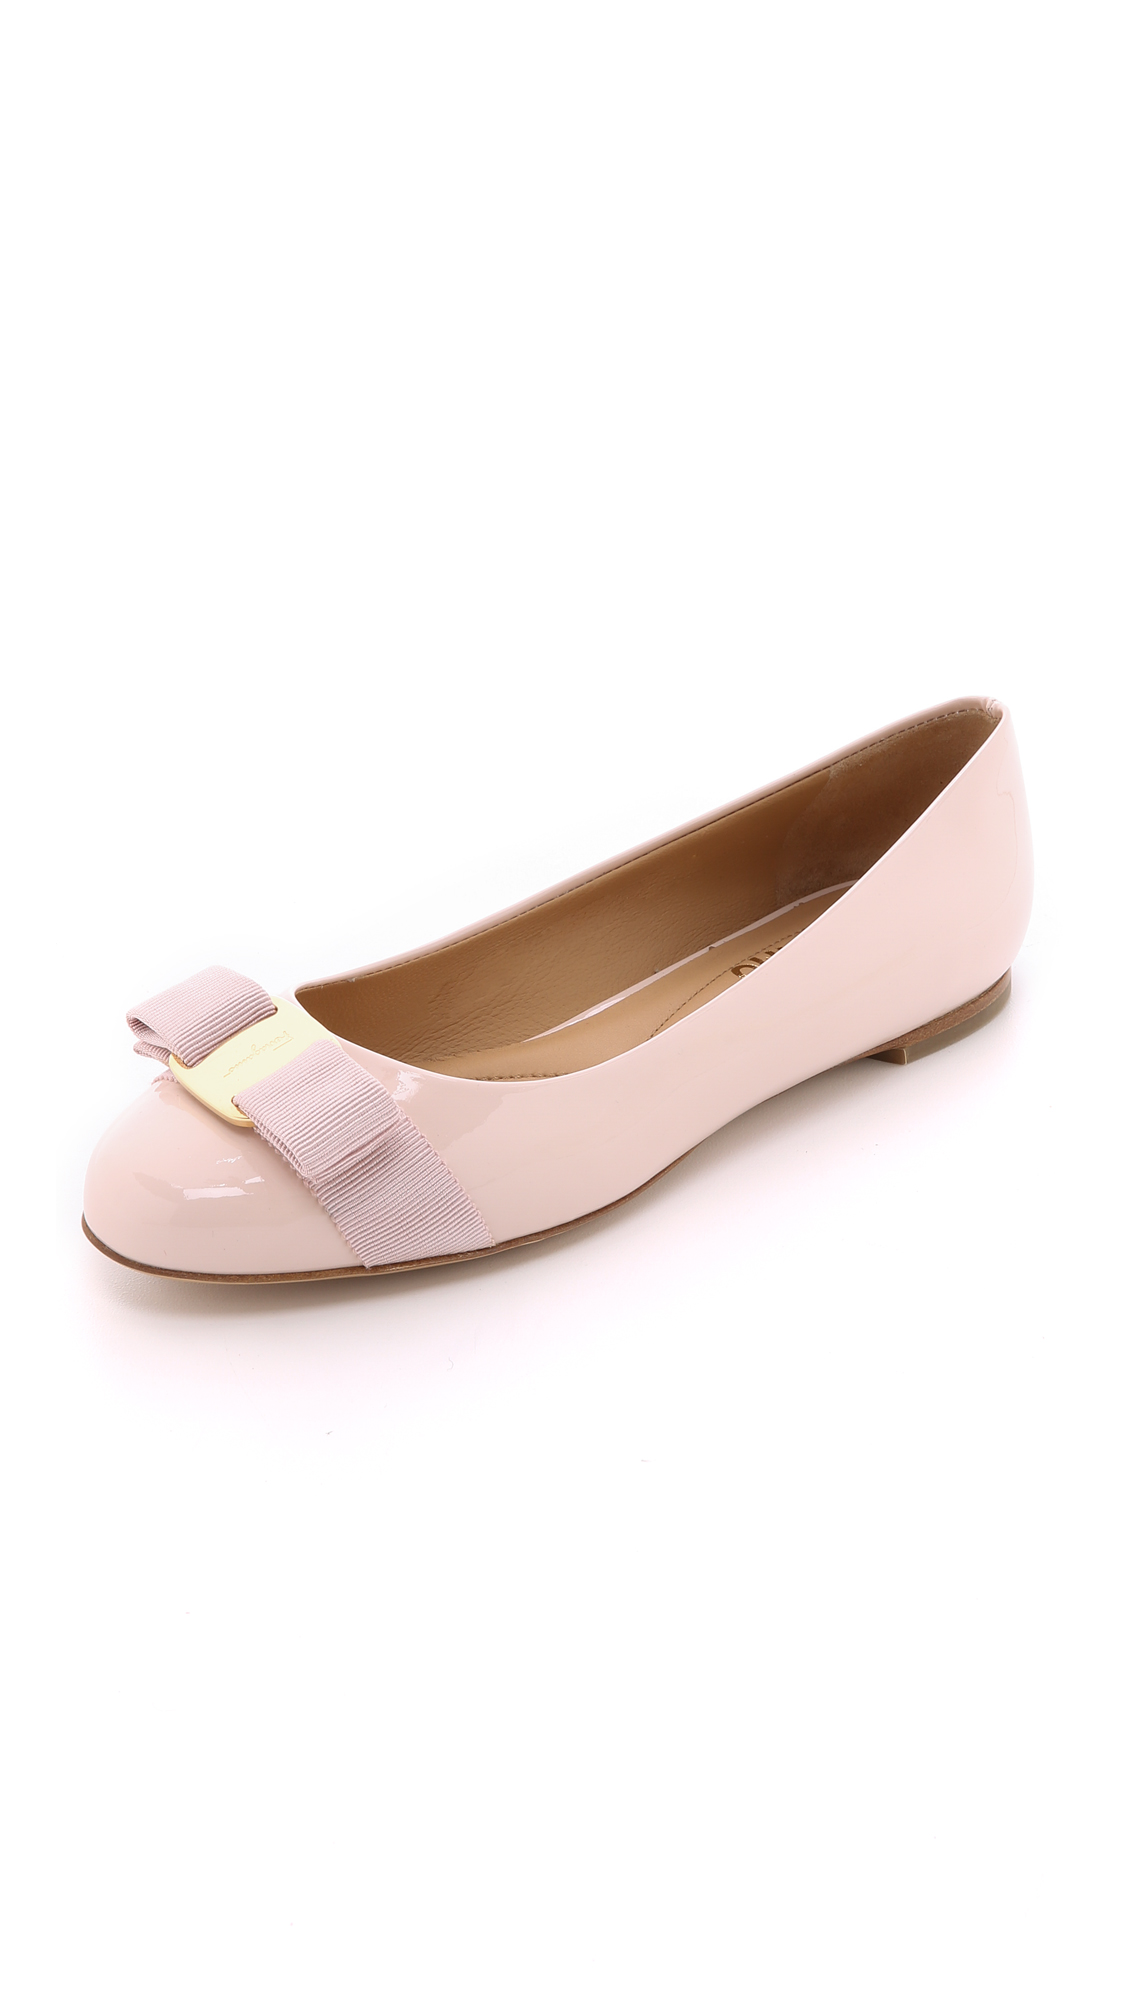 Varina Patent Leather Flats - Pink Size 7.5